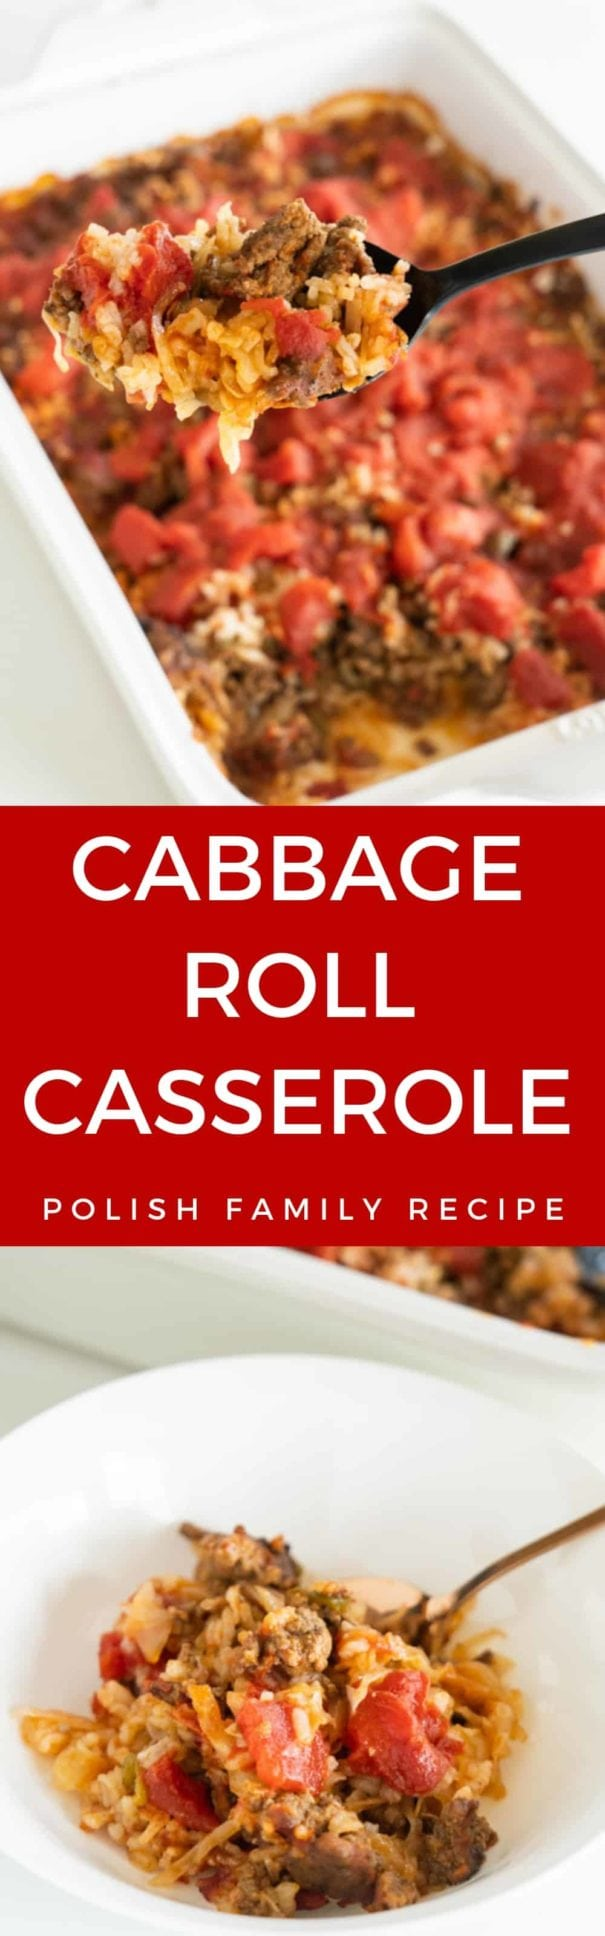 Cabbage Roll Casserole has all the same flavor as classic baked cabbage rolls, but with way less work! This unstuffed cabbage roll casserole combines layers of meat, rice, tomatoes and cabbage for an easy adaptation of the classic cabbage roll that is perfect for a busy weeknight meal! Enjoy this traditional Polish food recipe!